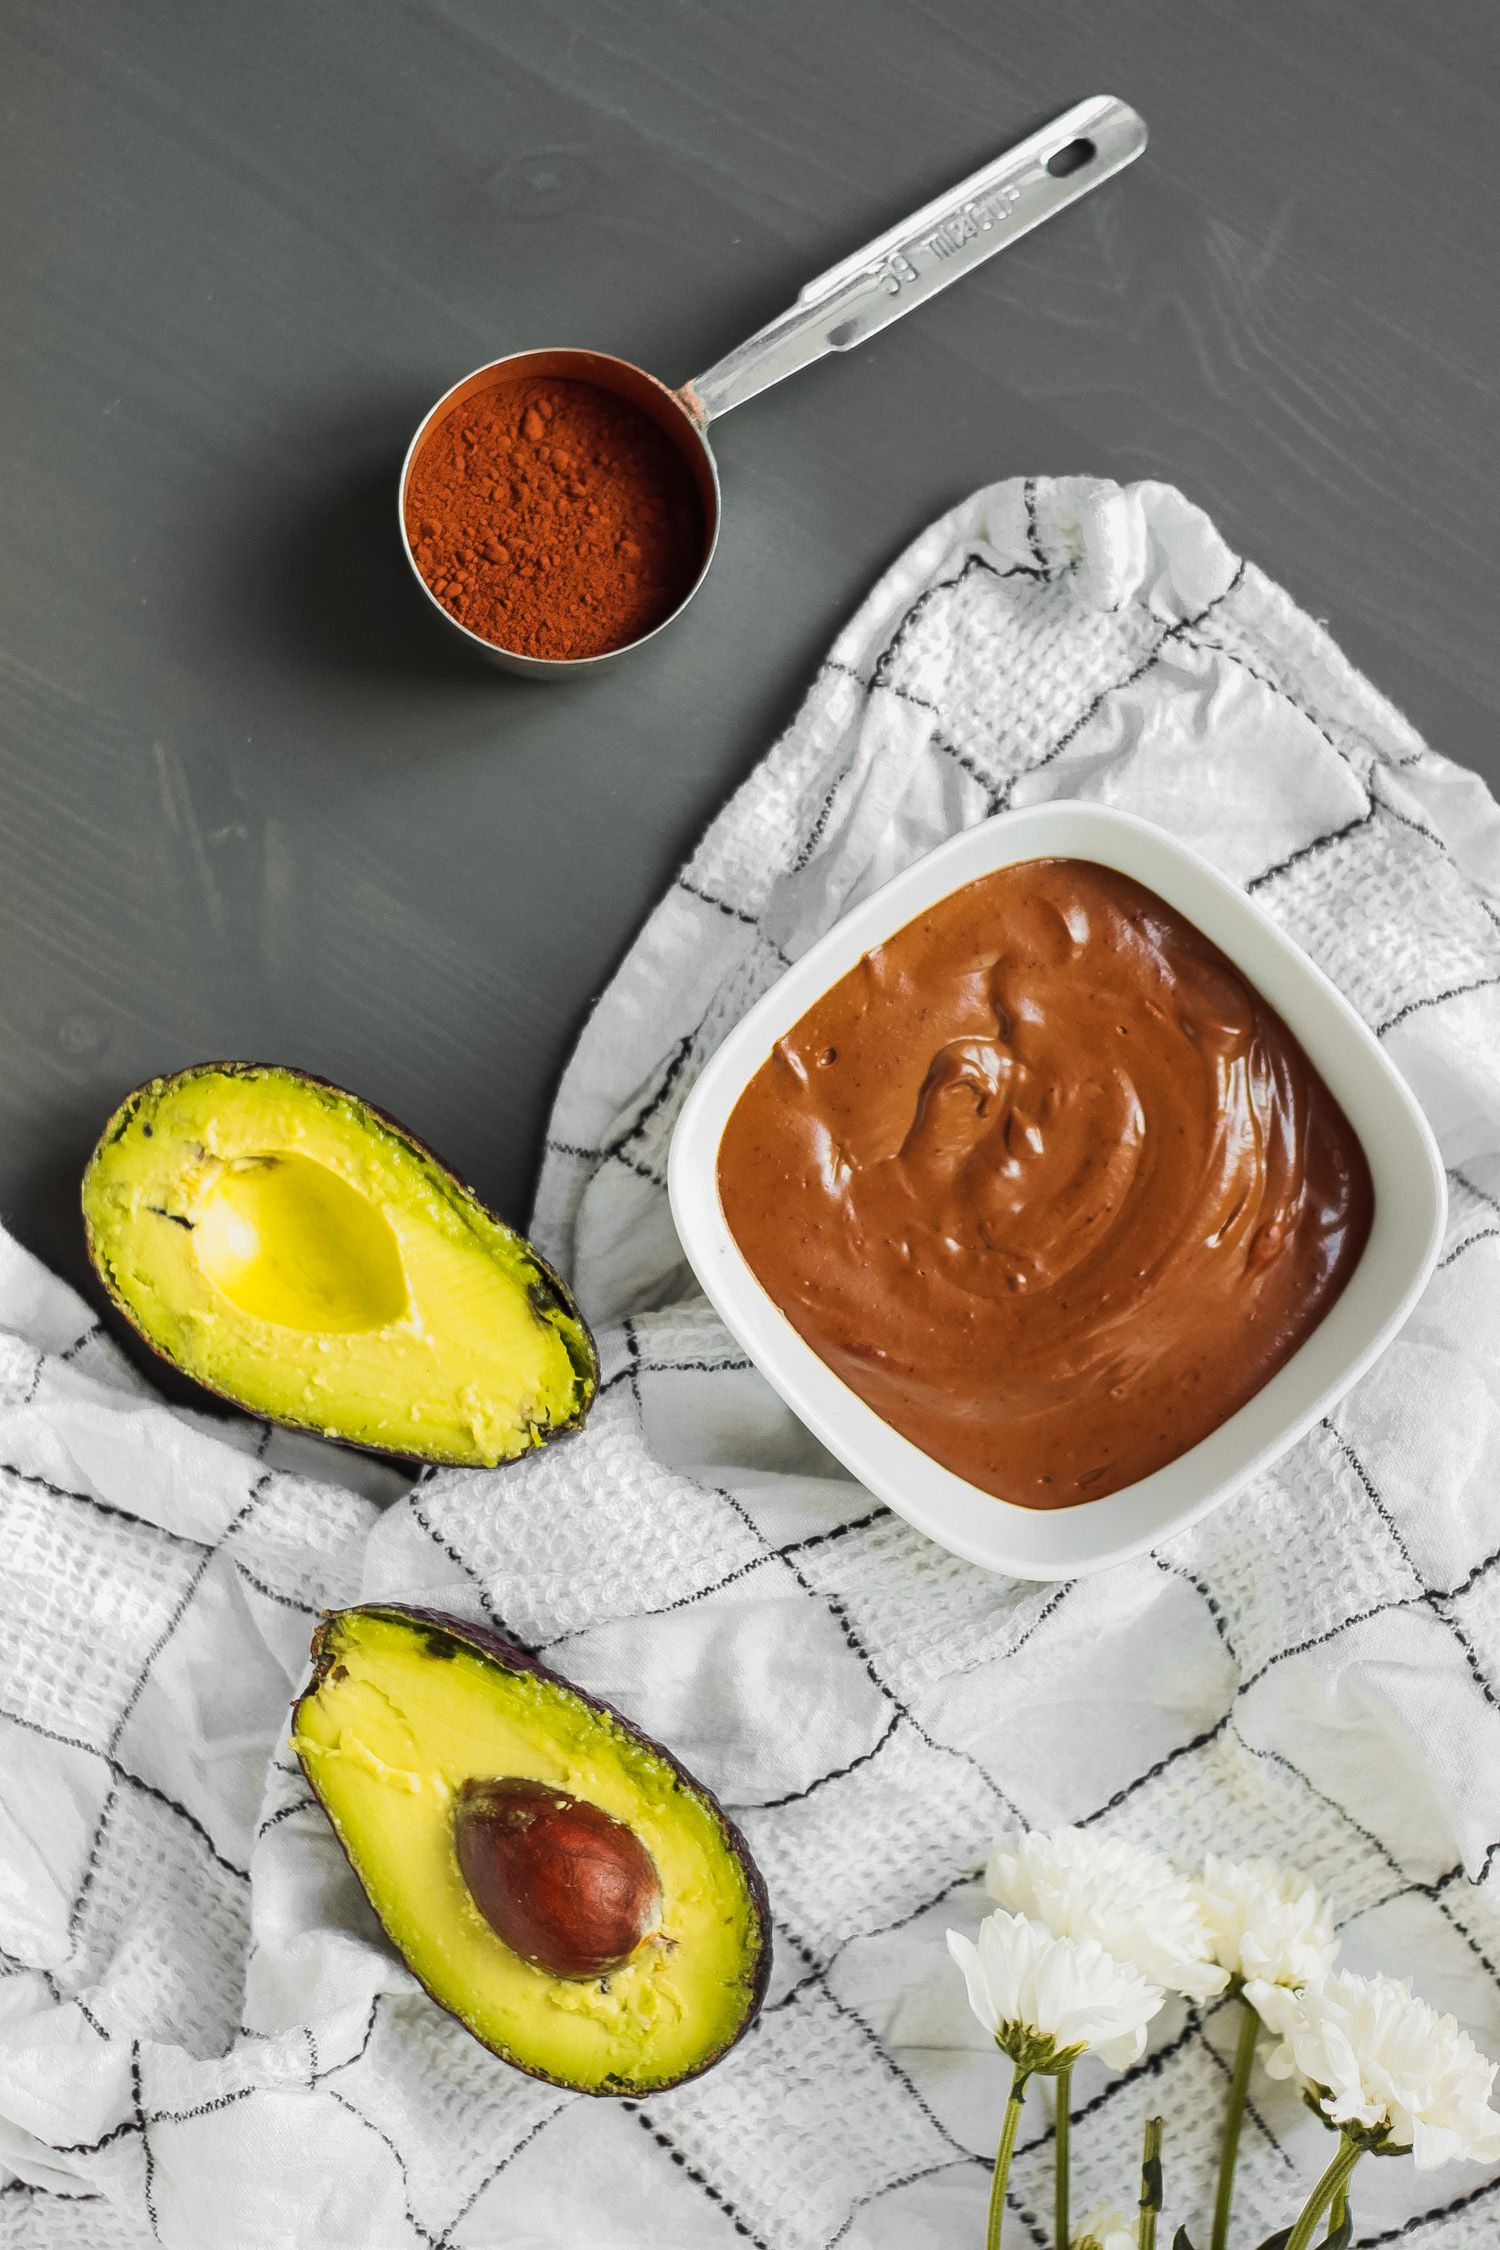 Avocado Chocolate Mousse - Mrs. Goldenberry